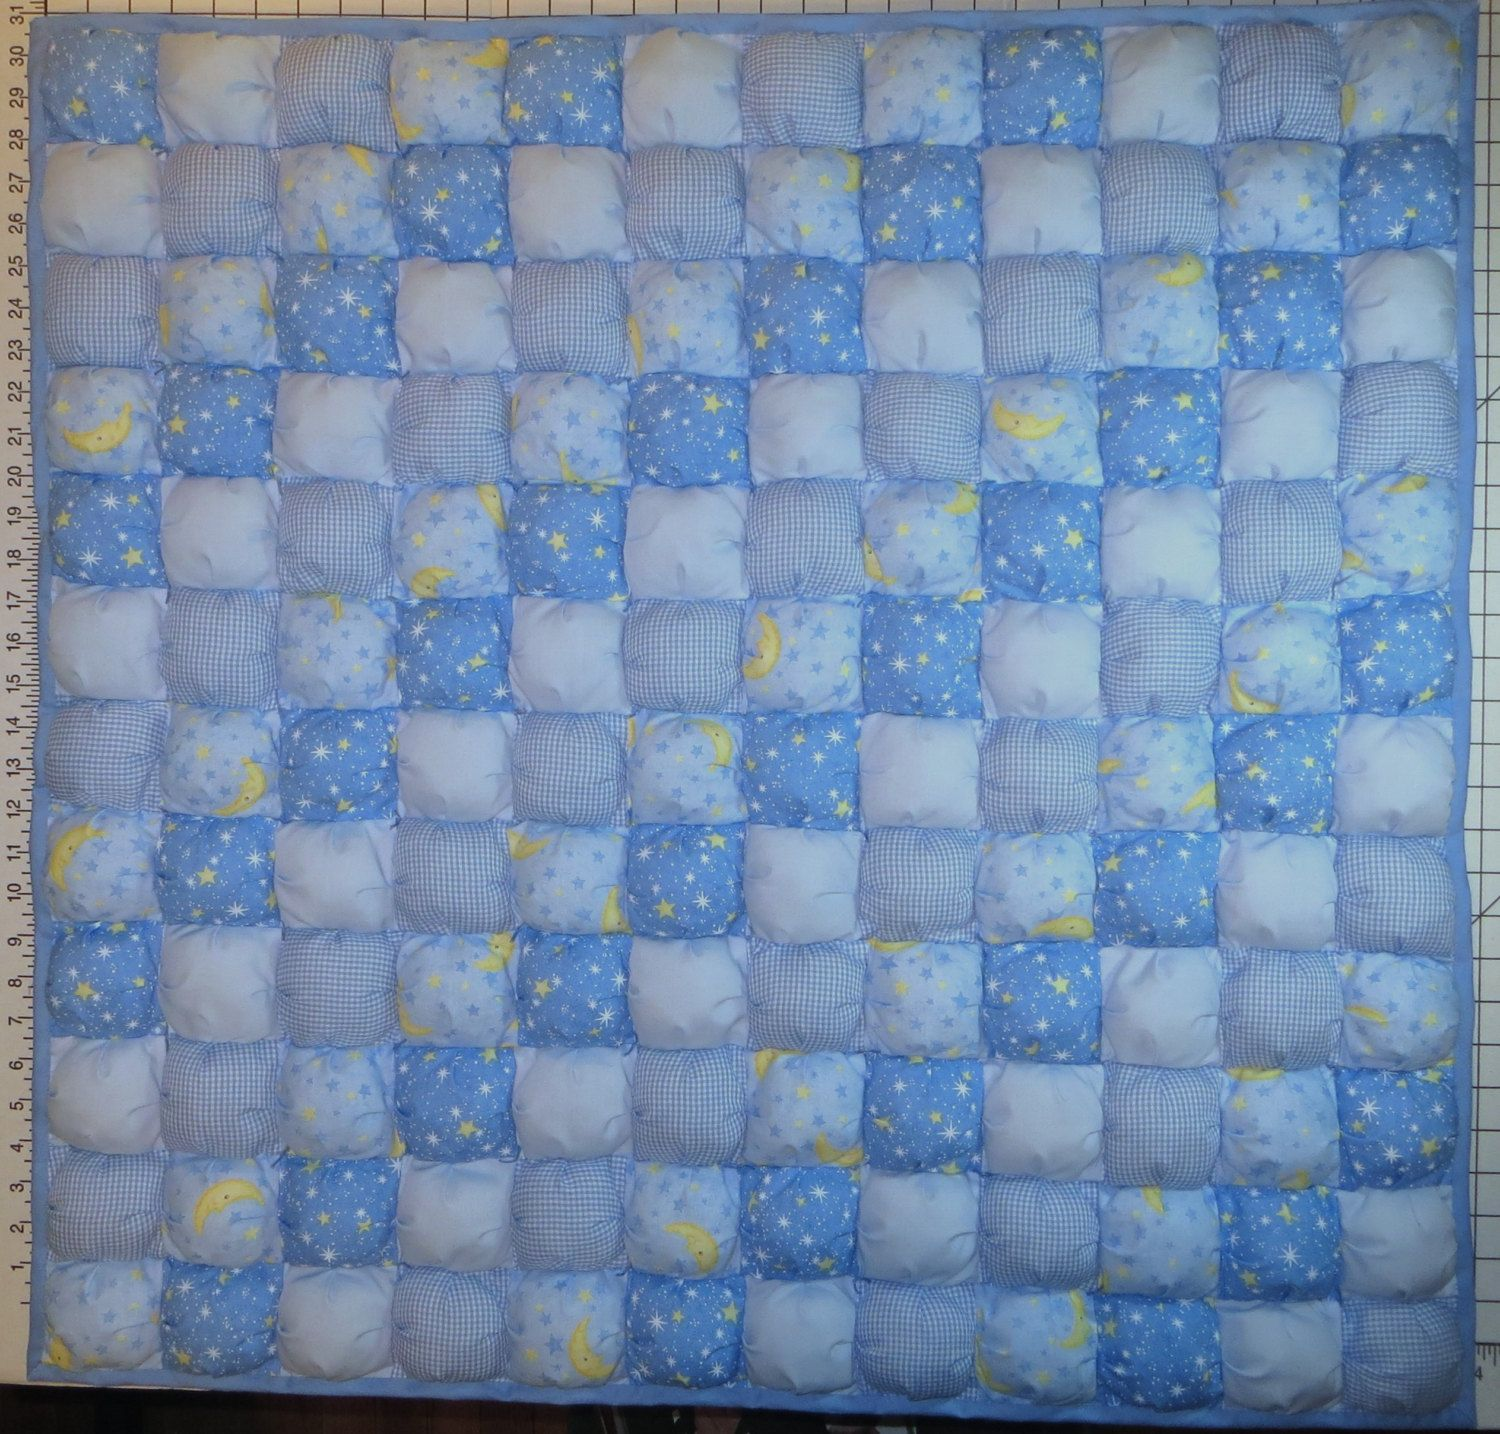 Baby cribs not made in china - Baby Boy Blue Puff Quilt Biscuit Quilt Baby Or Crib Size Made In Usa